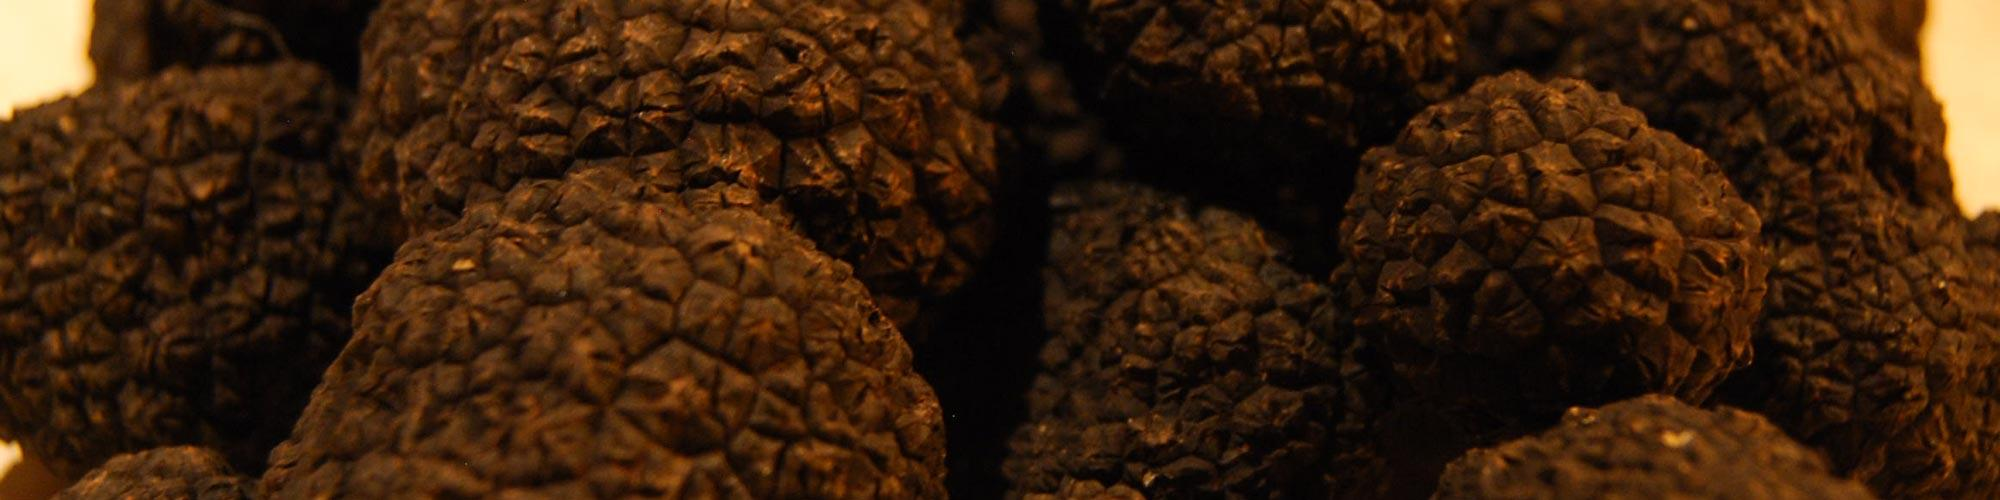 Truffle-And-Mushroom-Hunter-Sustainable-Truffle-Production